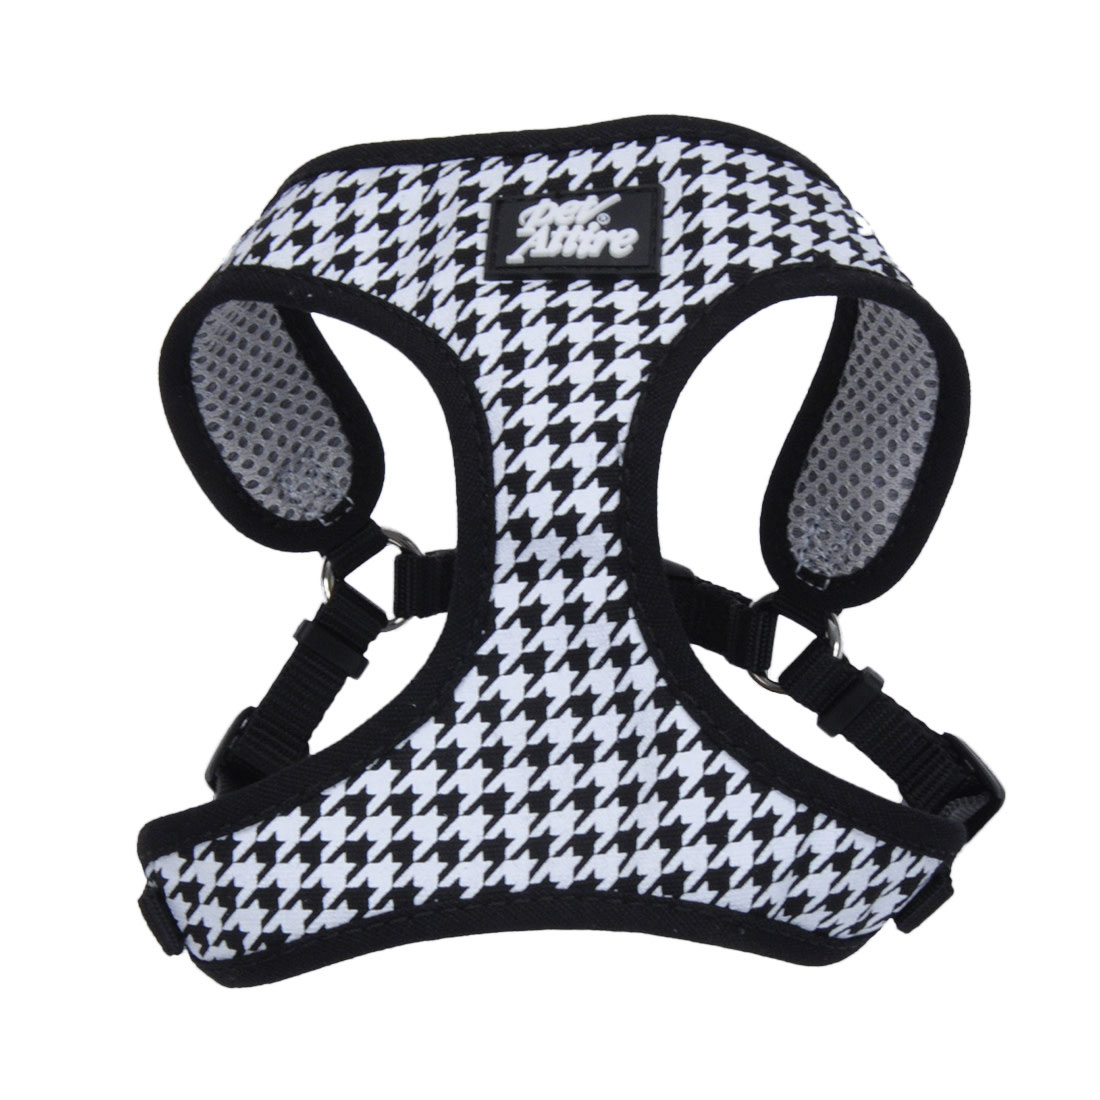 Ribbon Designer Wrap Adjustable Dog Harness, Houndstooth, 5/8-in x 16-in-19-in